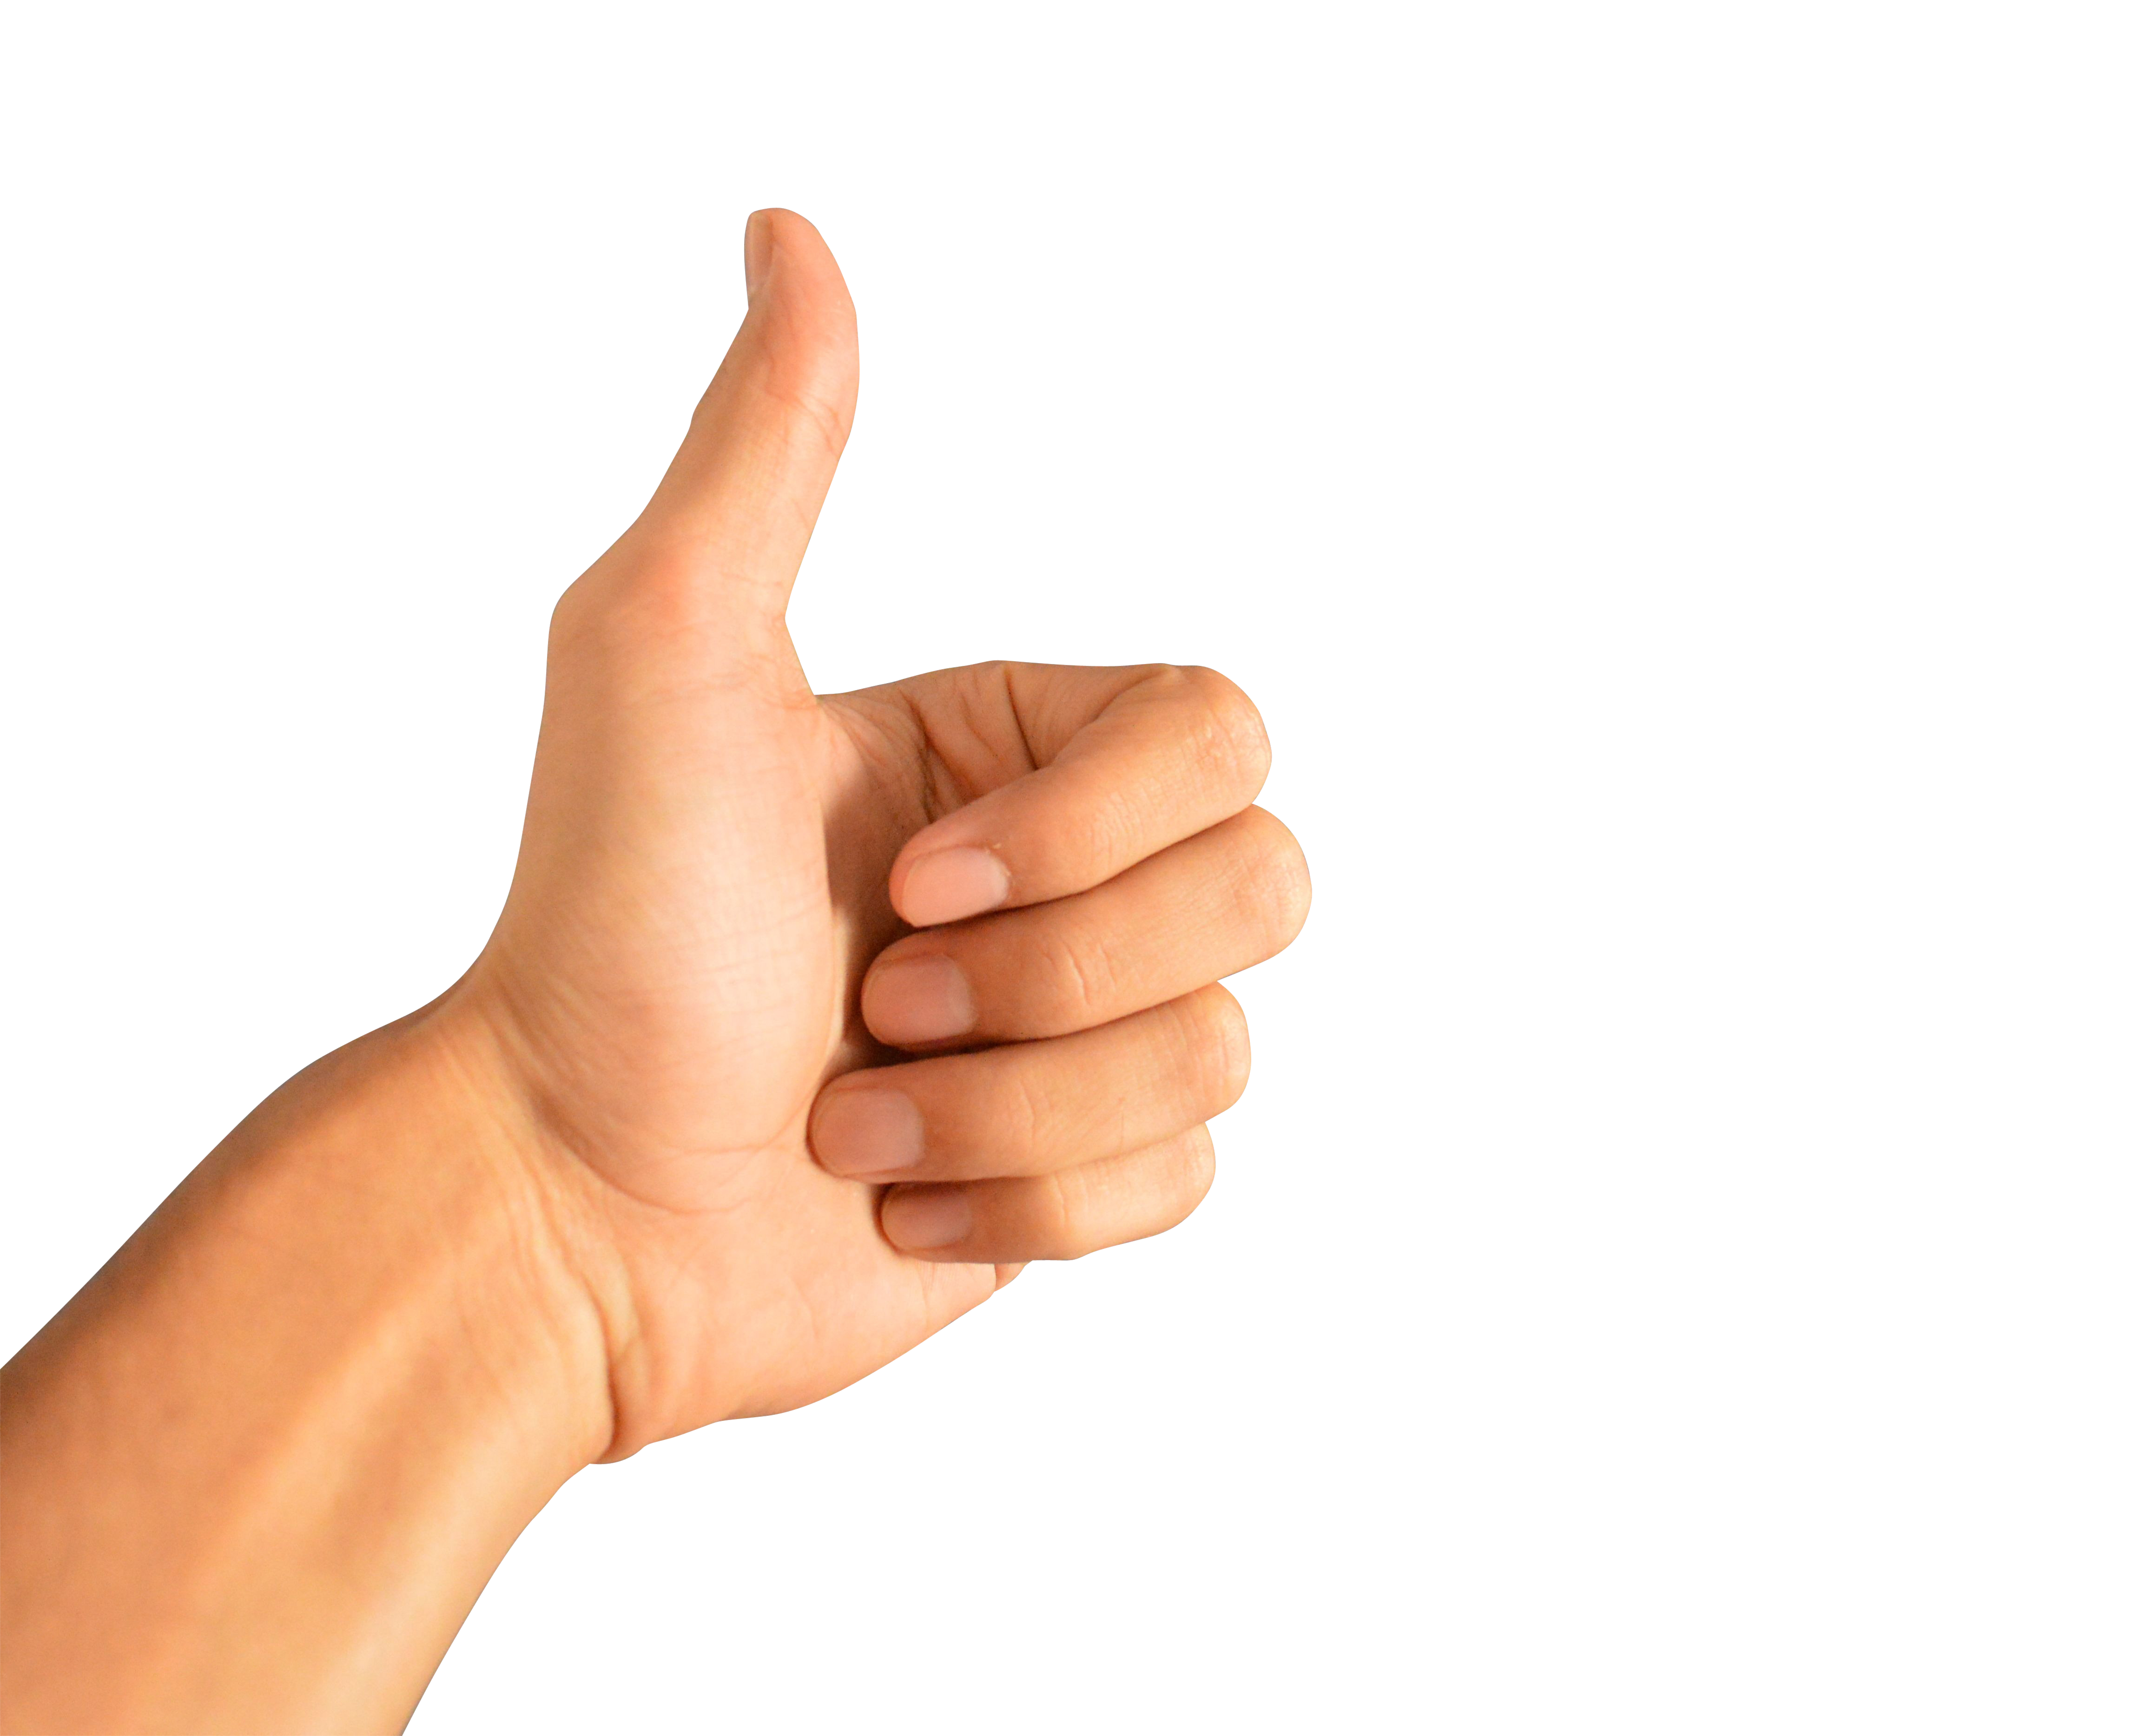 Thumbs Up PNG Image.